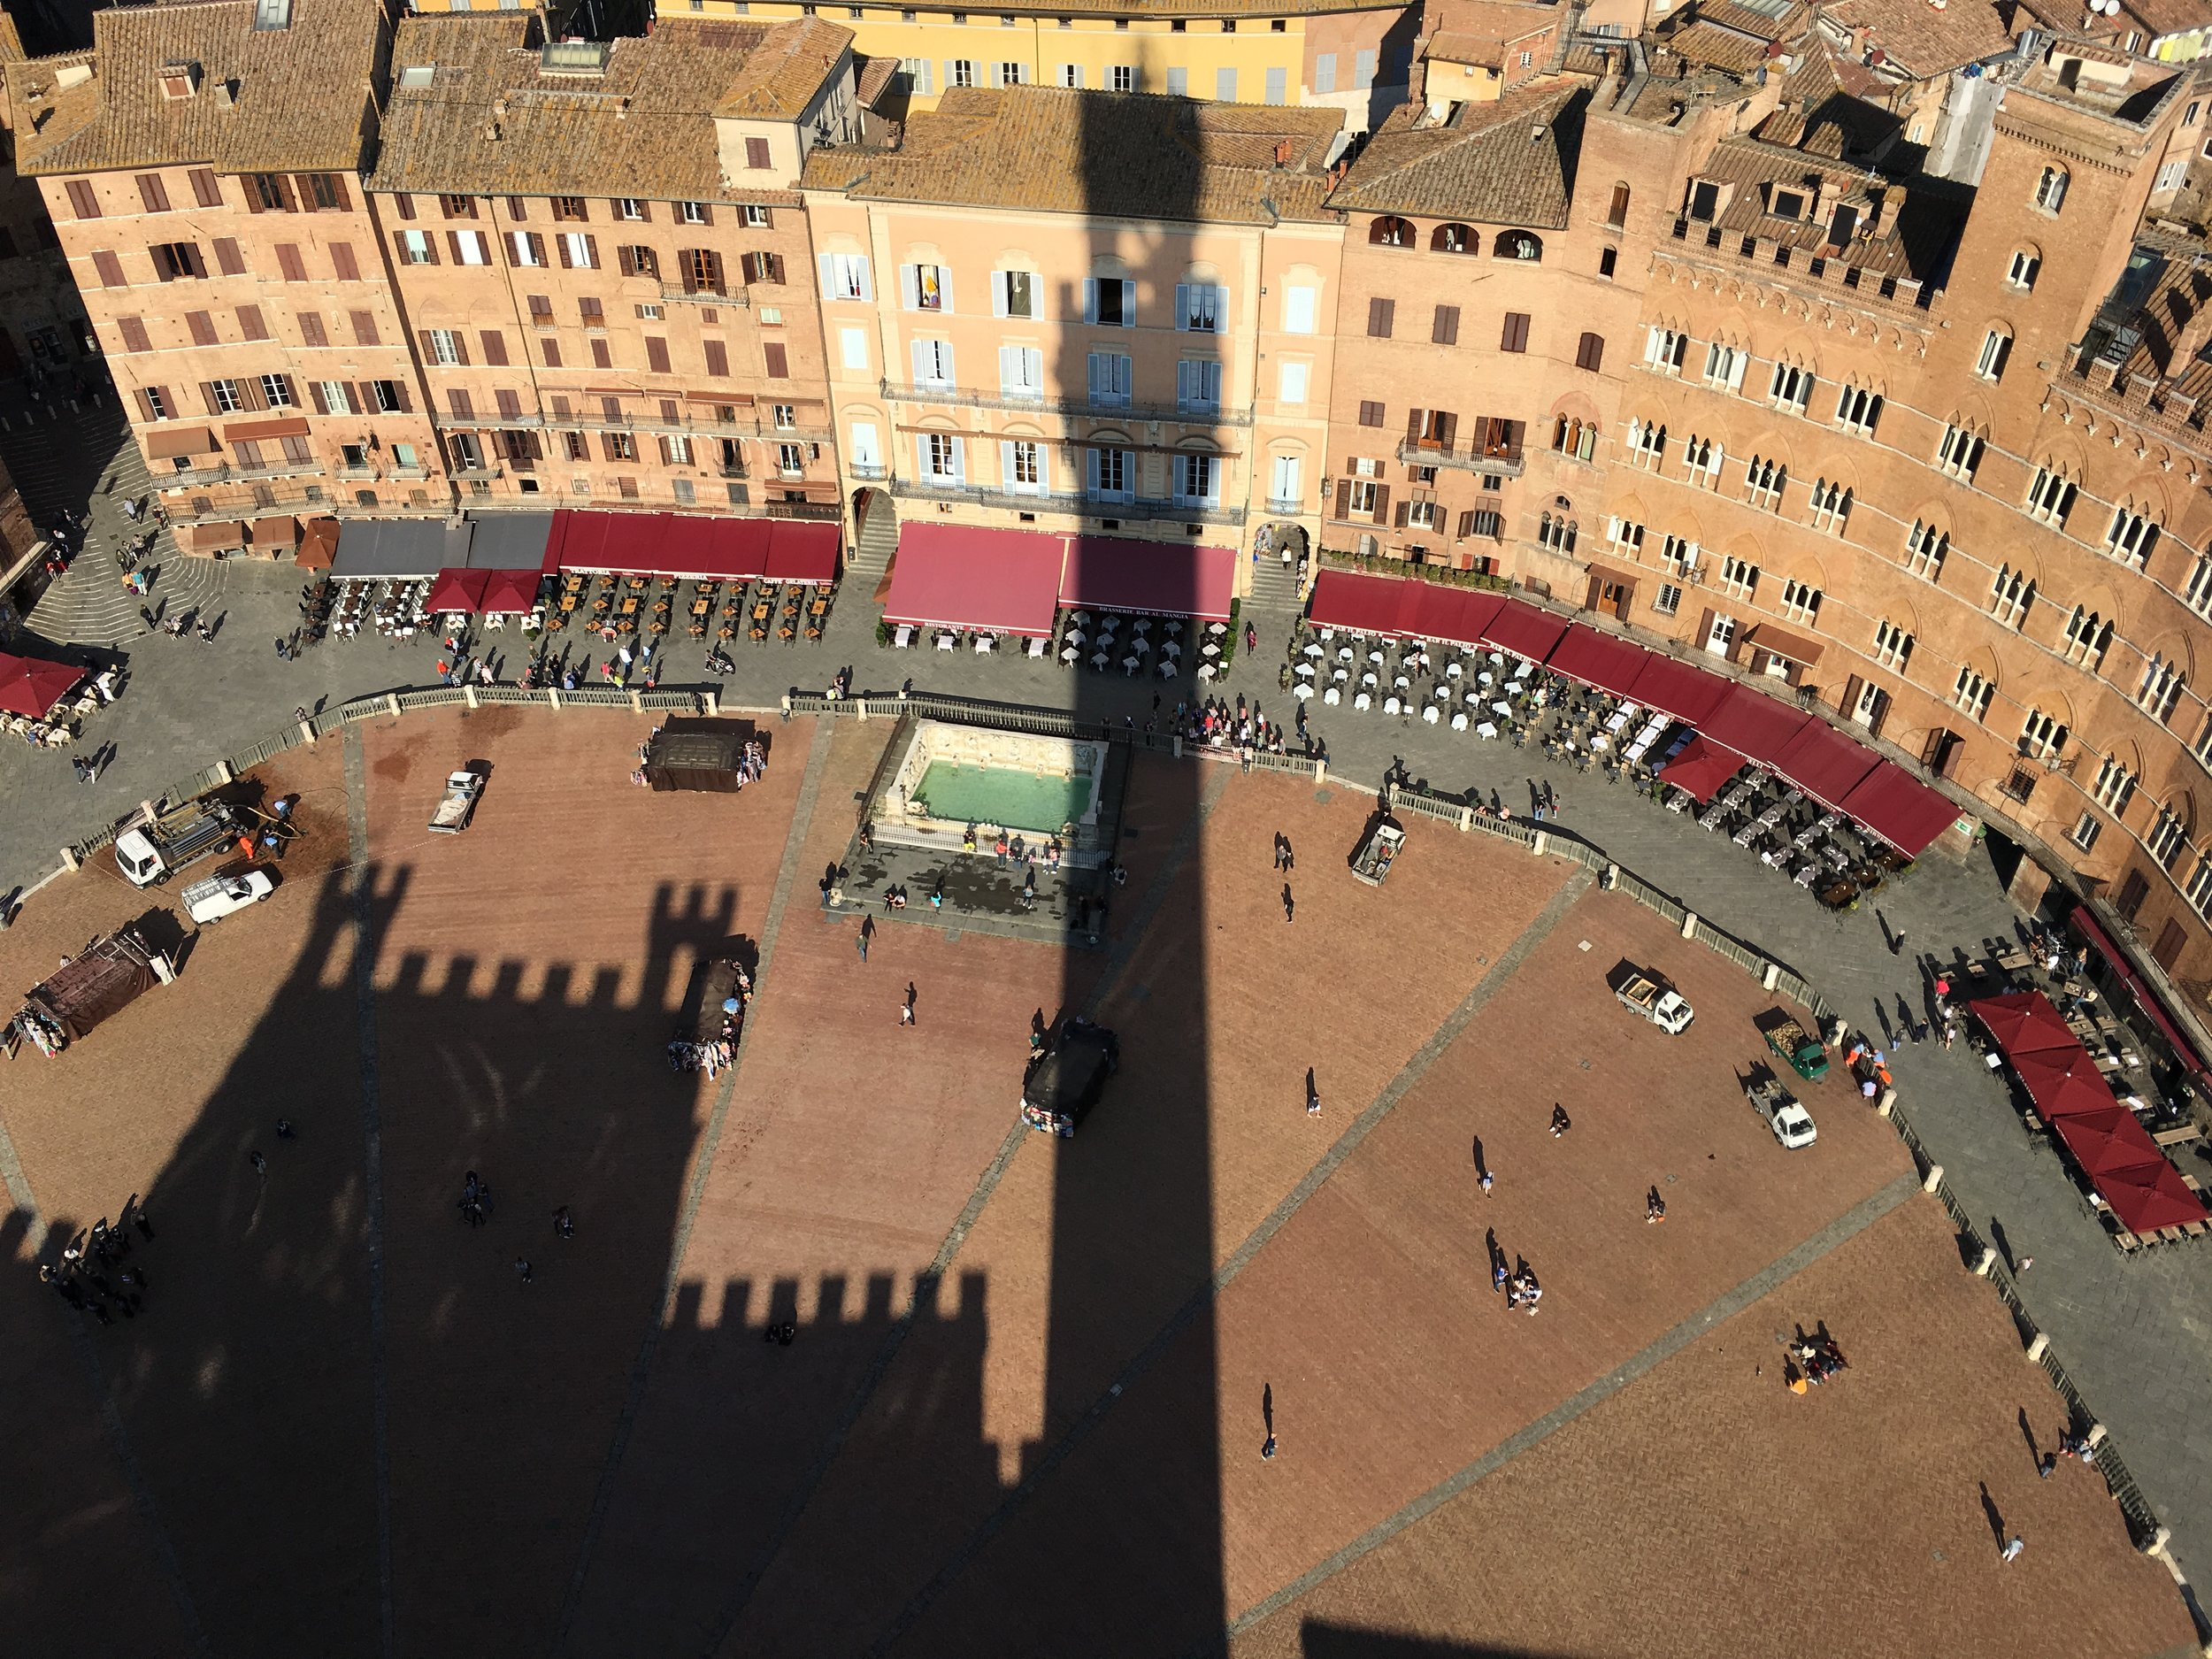 Piazza del Campo from 100m up